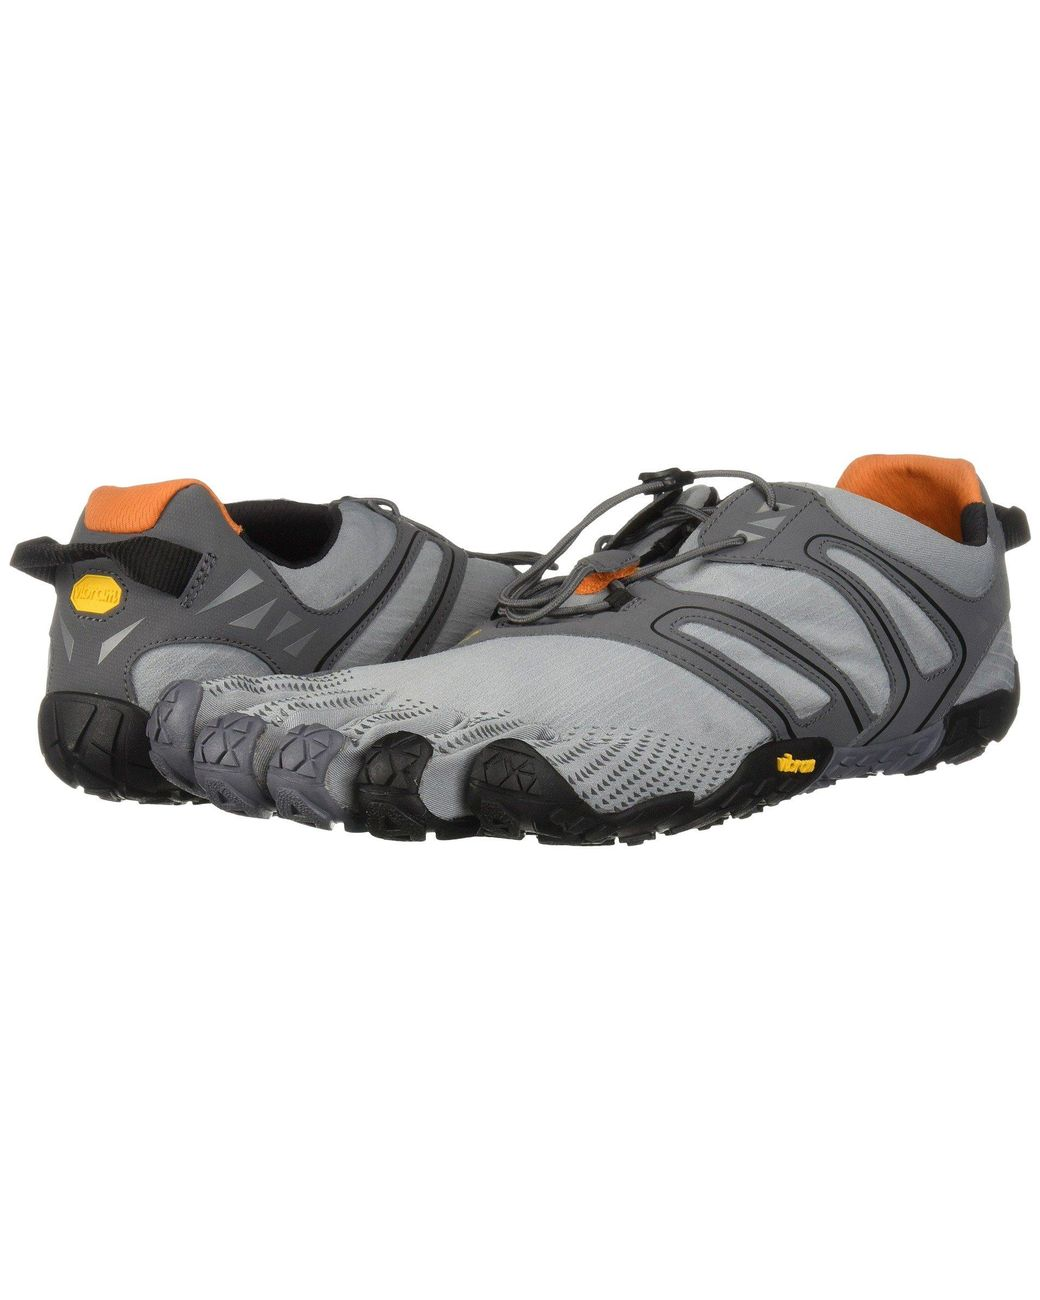 713aa66ce10db2 Lyst - Vibram Fivefingers V-trail in Gray for Men - Save 45%